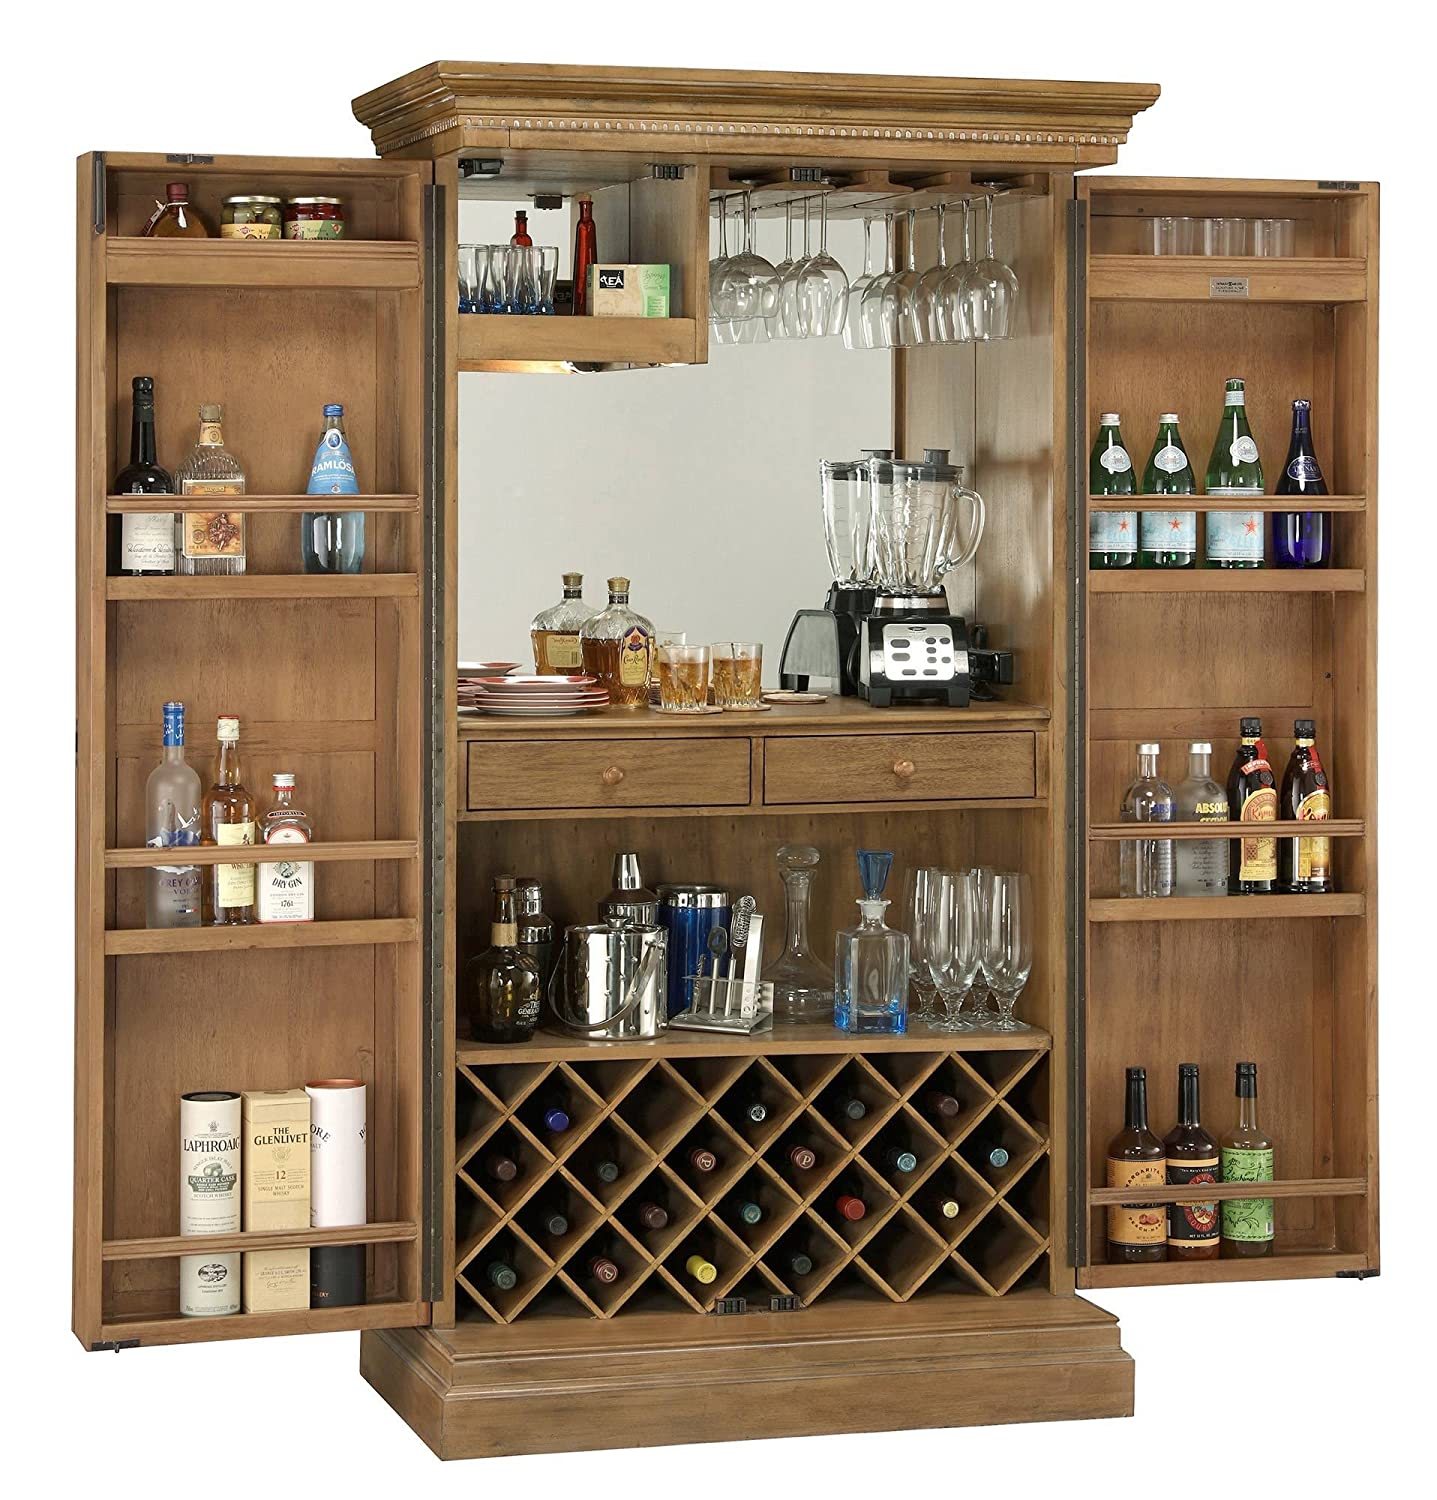 Amazon.com: Howard Miller Clare Valley Wine and Bar Storage ...